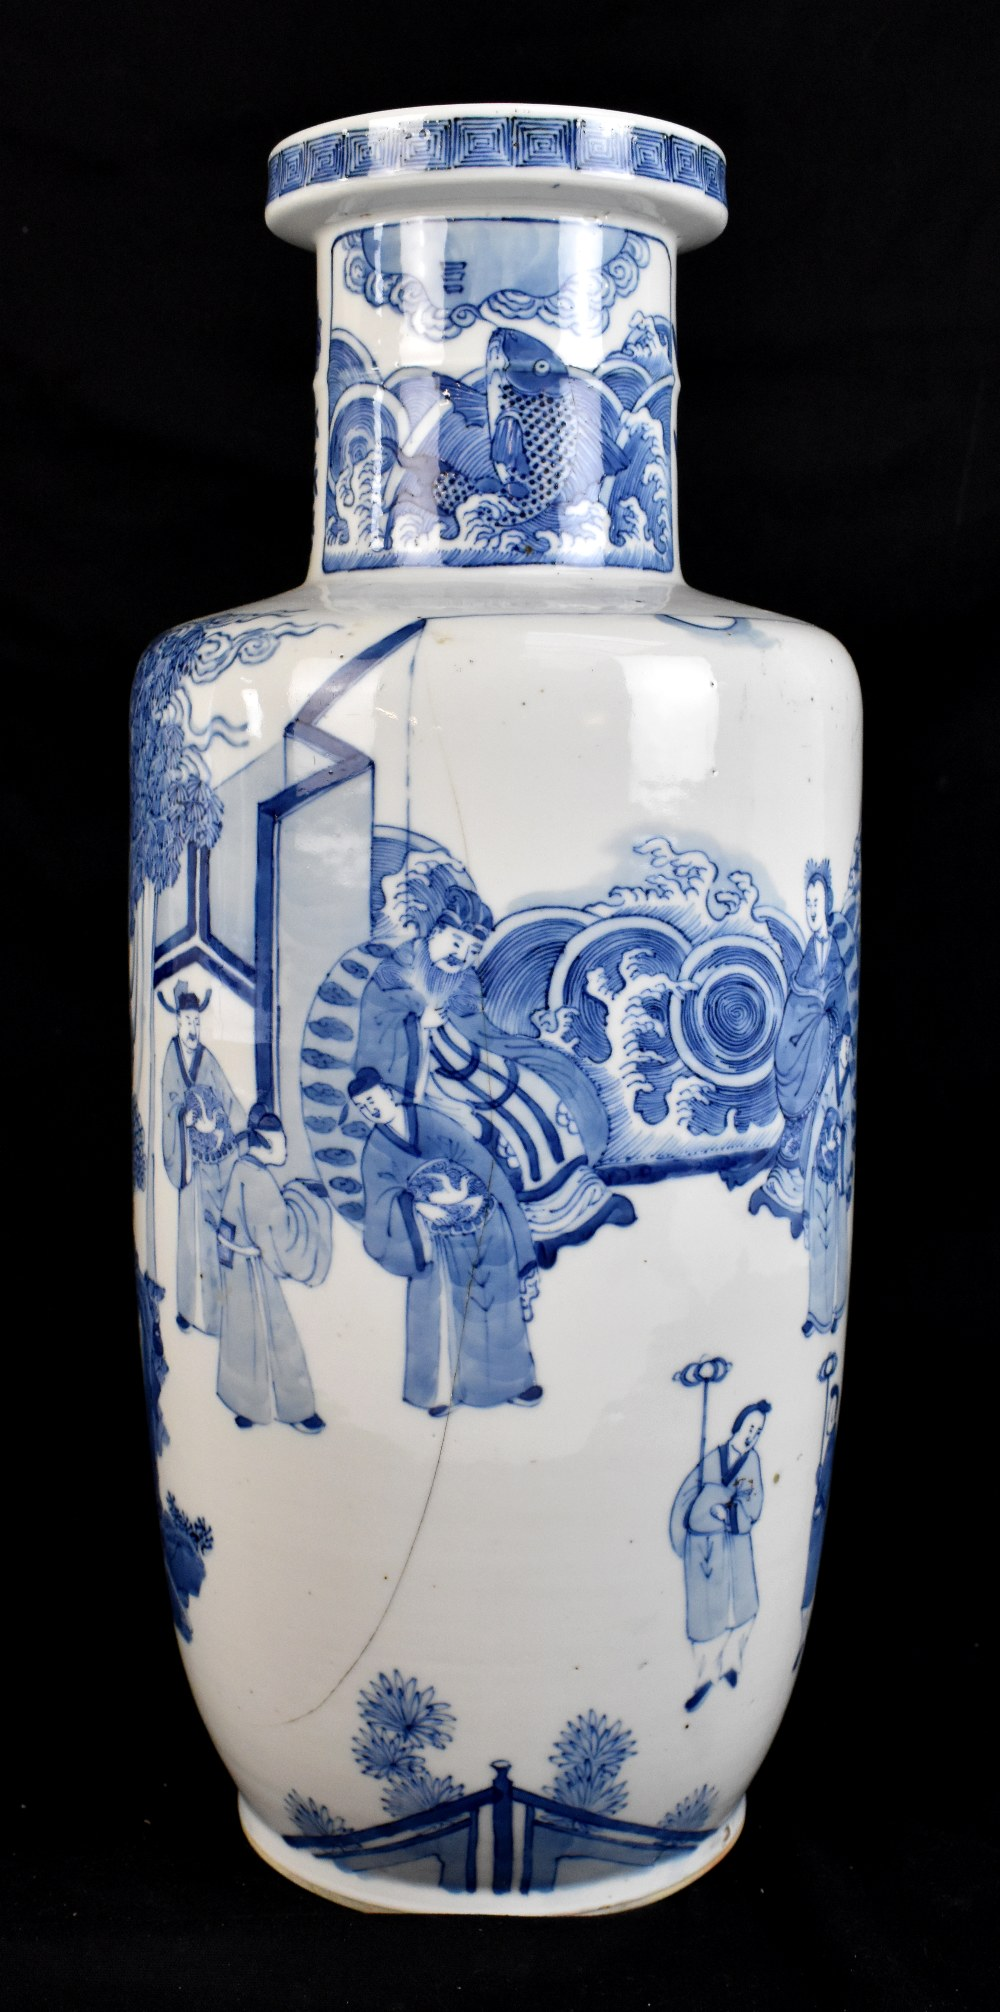 A good and large 19th century Chinese blue and white rouleau vase, painted with a continuous figural